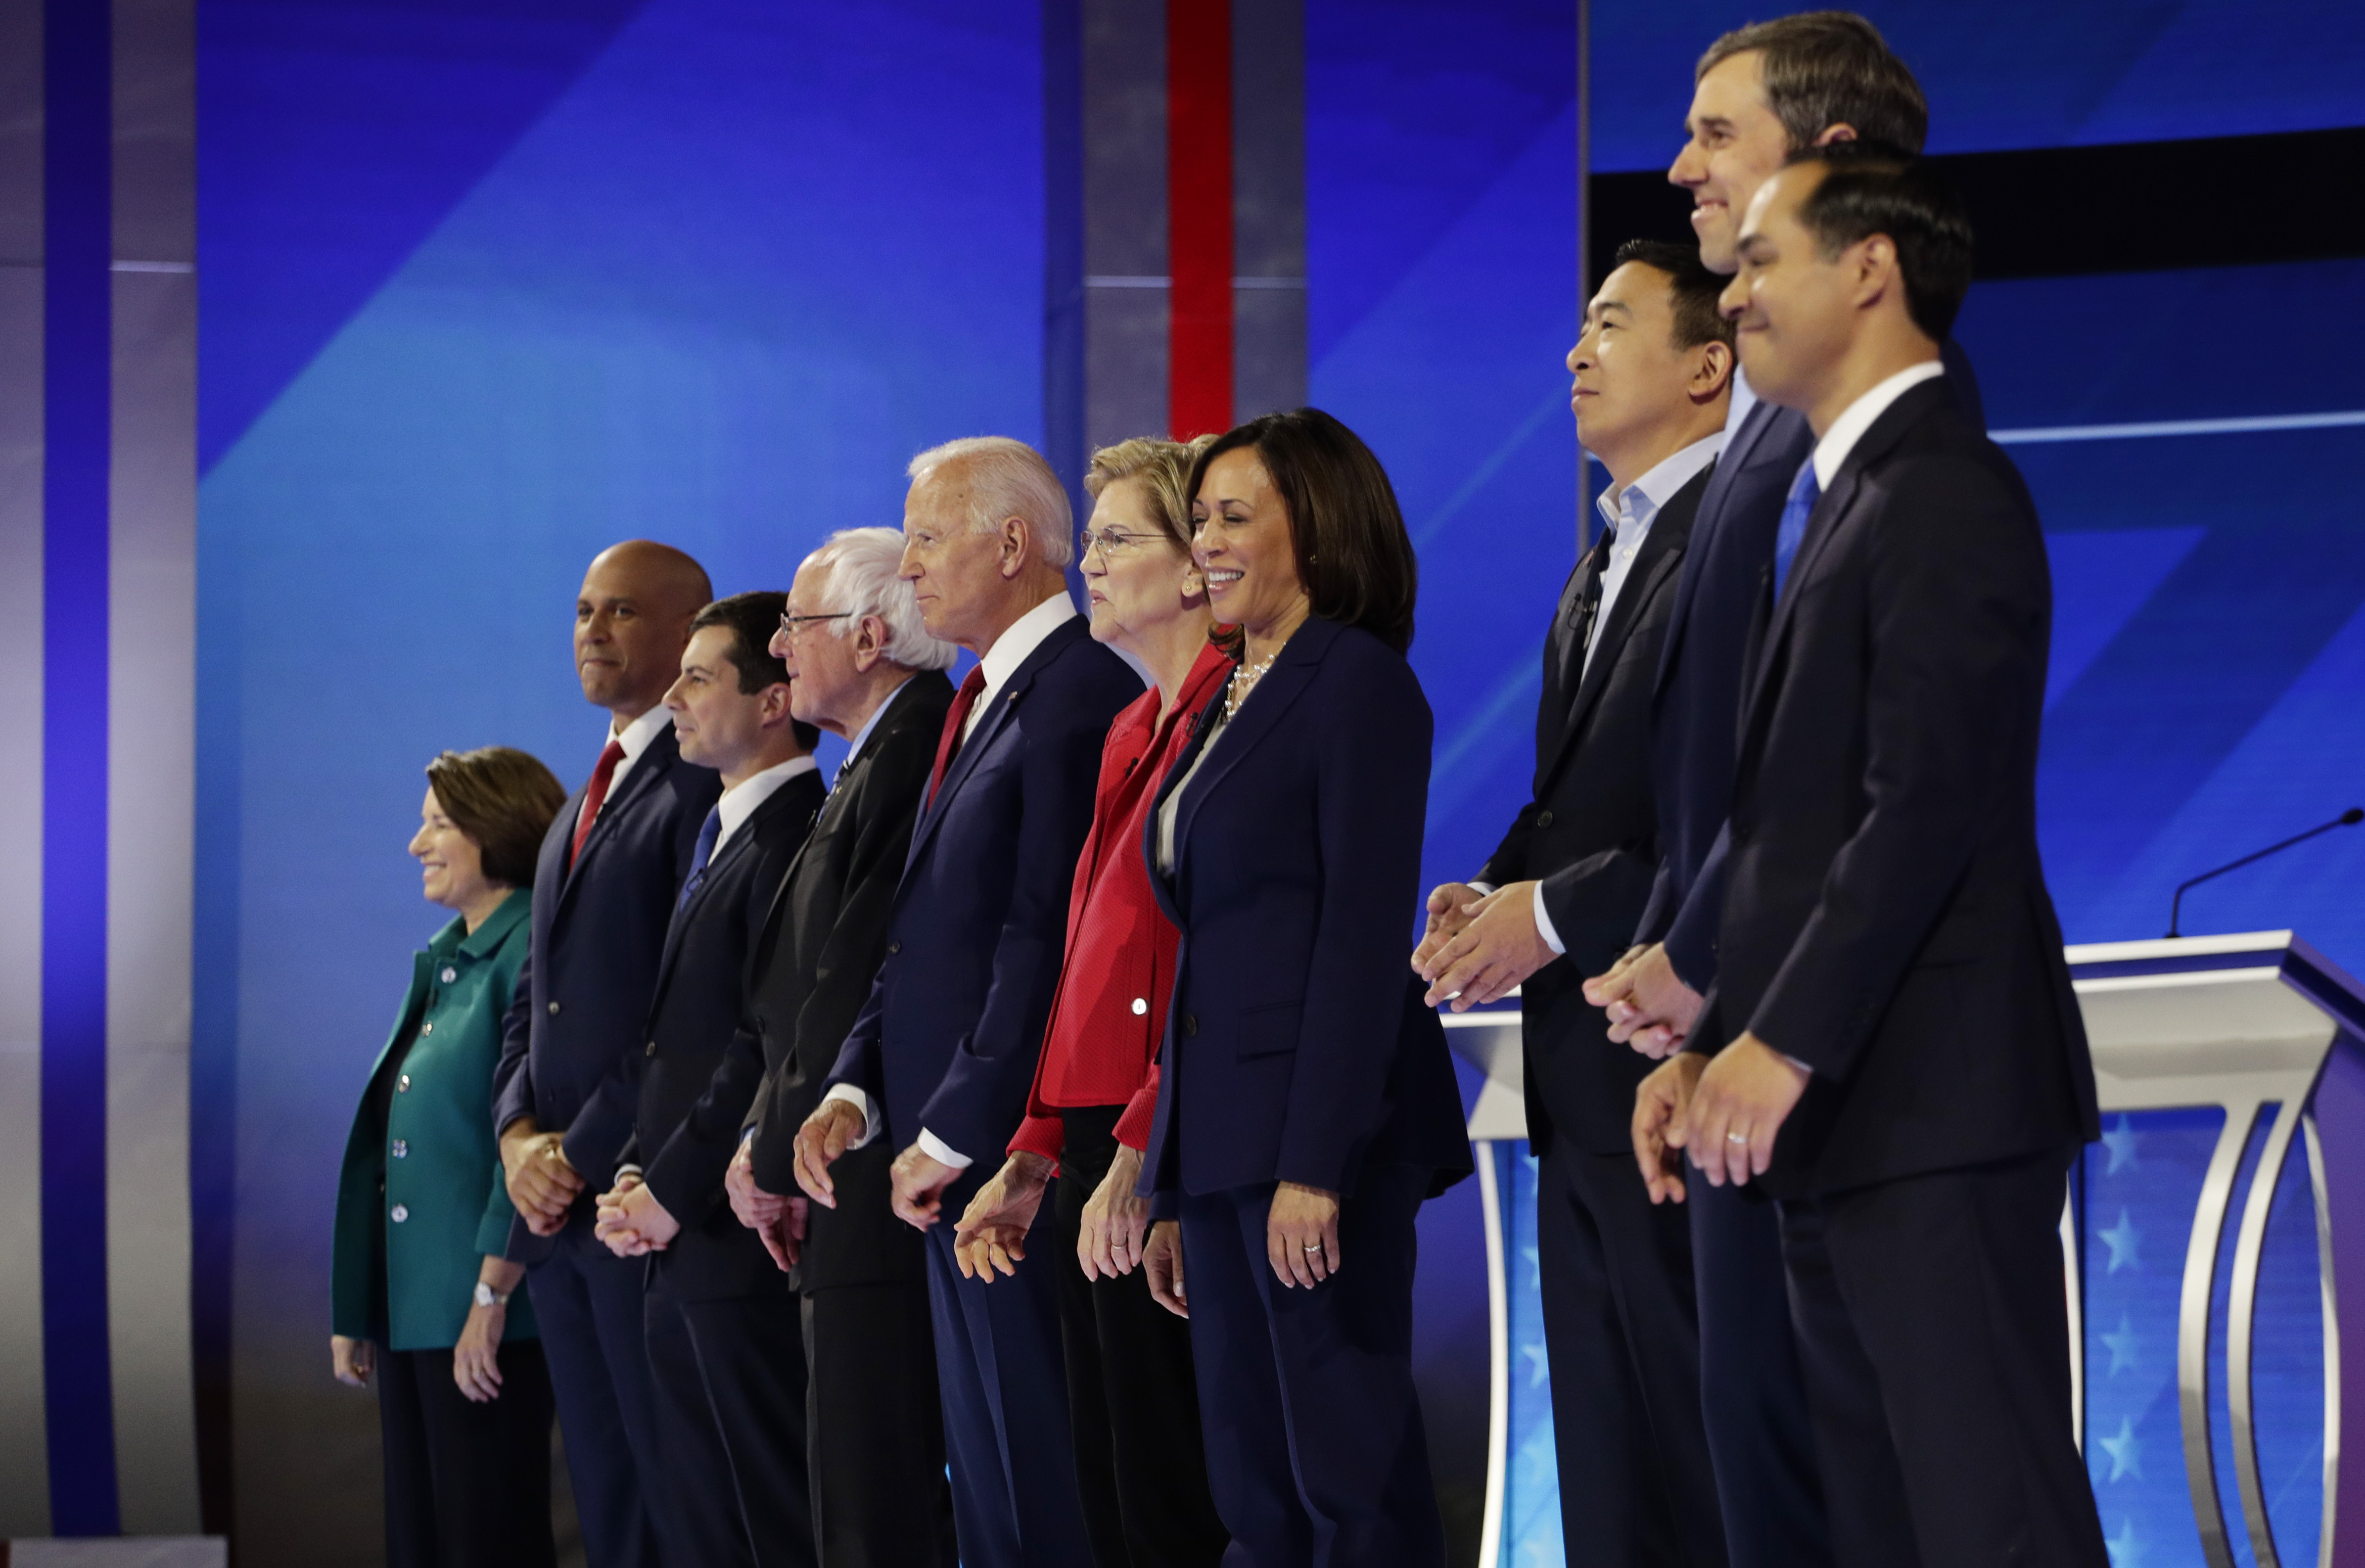 Suitability It S No Longer About What Female Candidates Are Wearing The Boston Globe